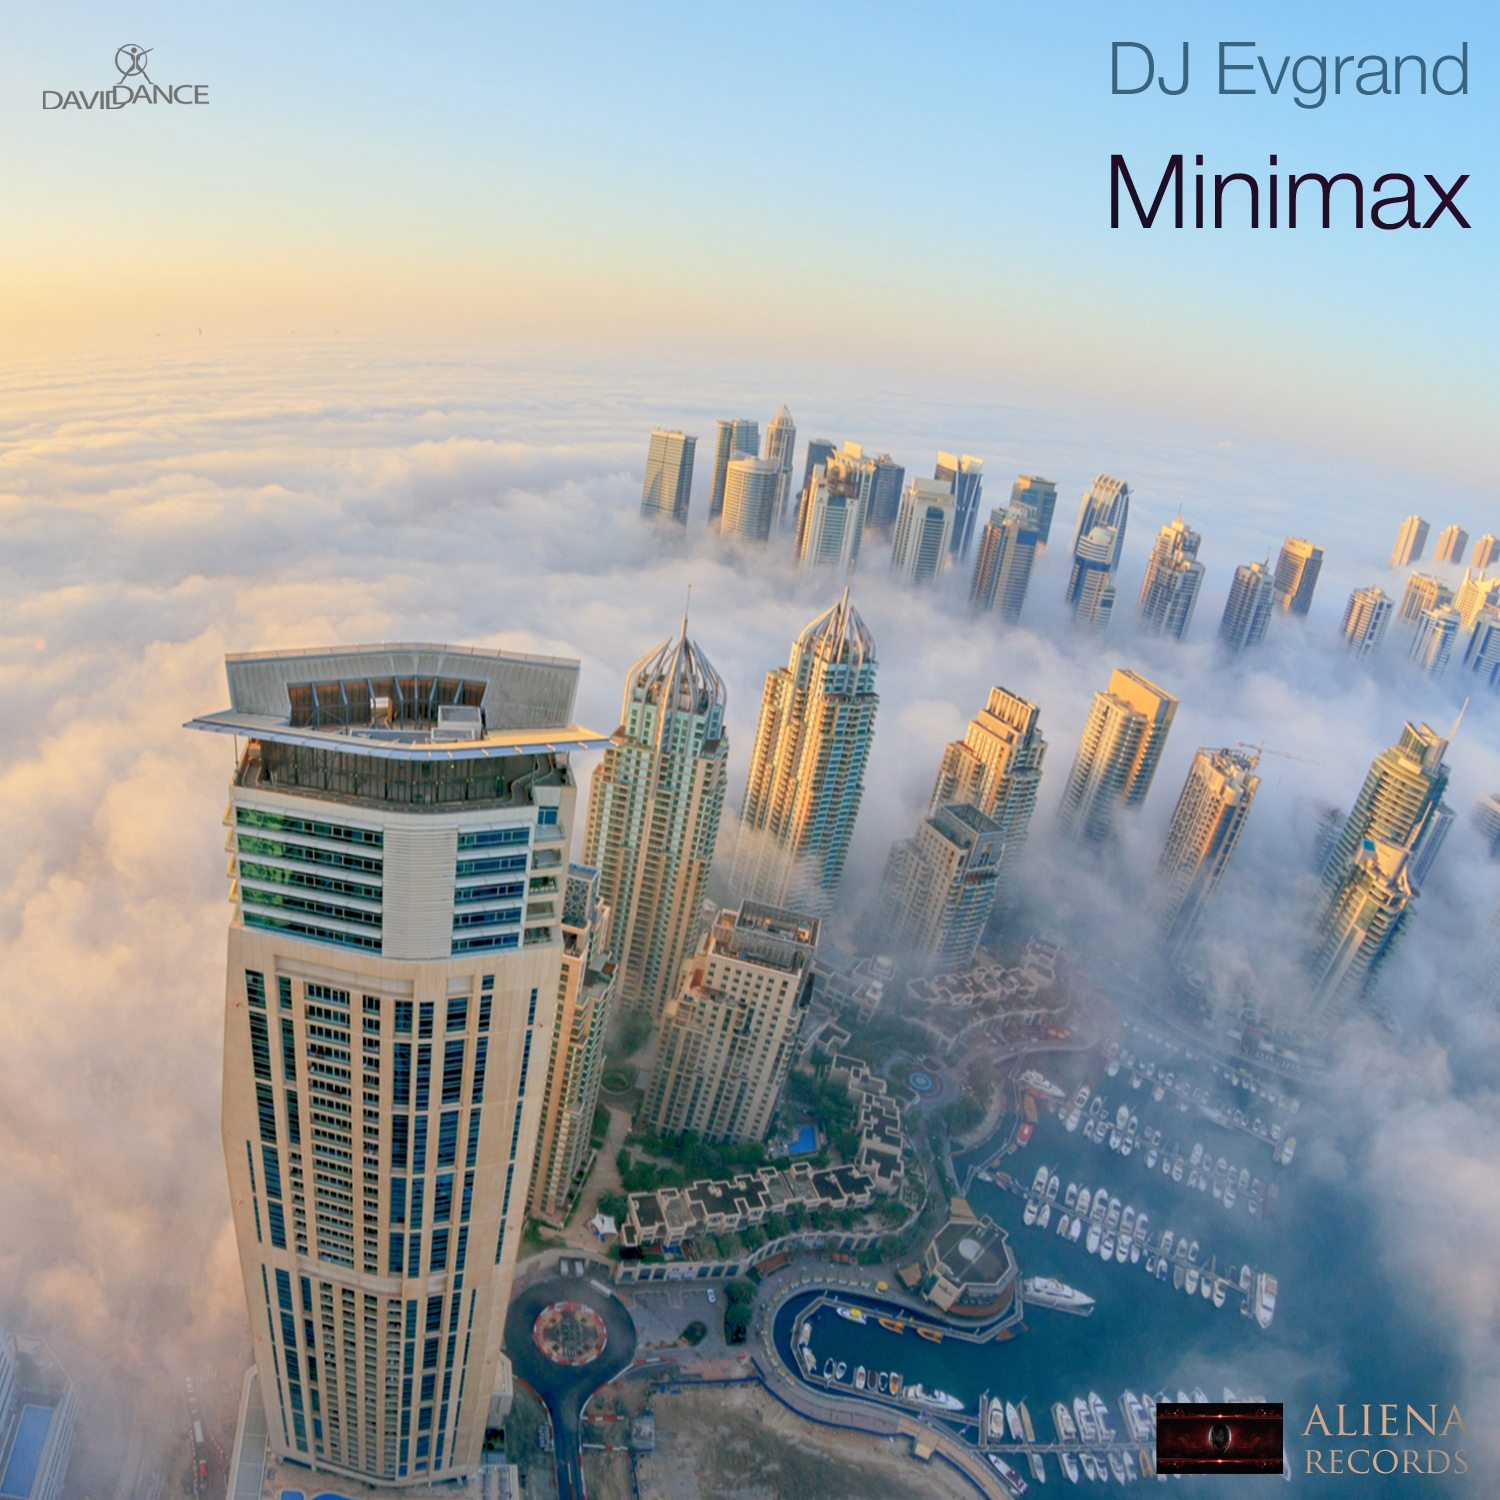 Dj Evgrand - Minimax (Original mix)